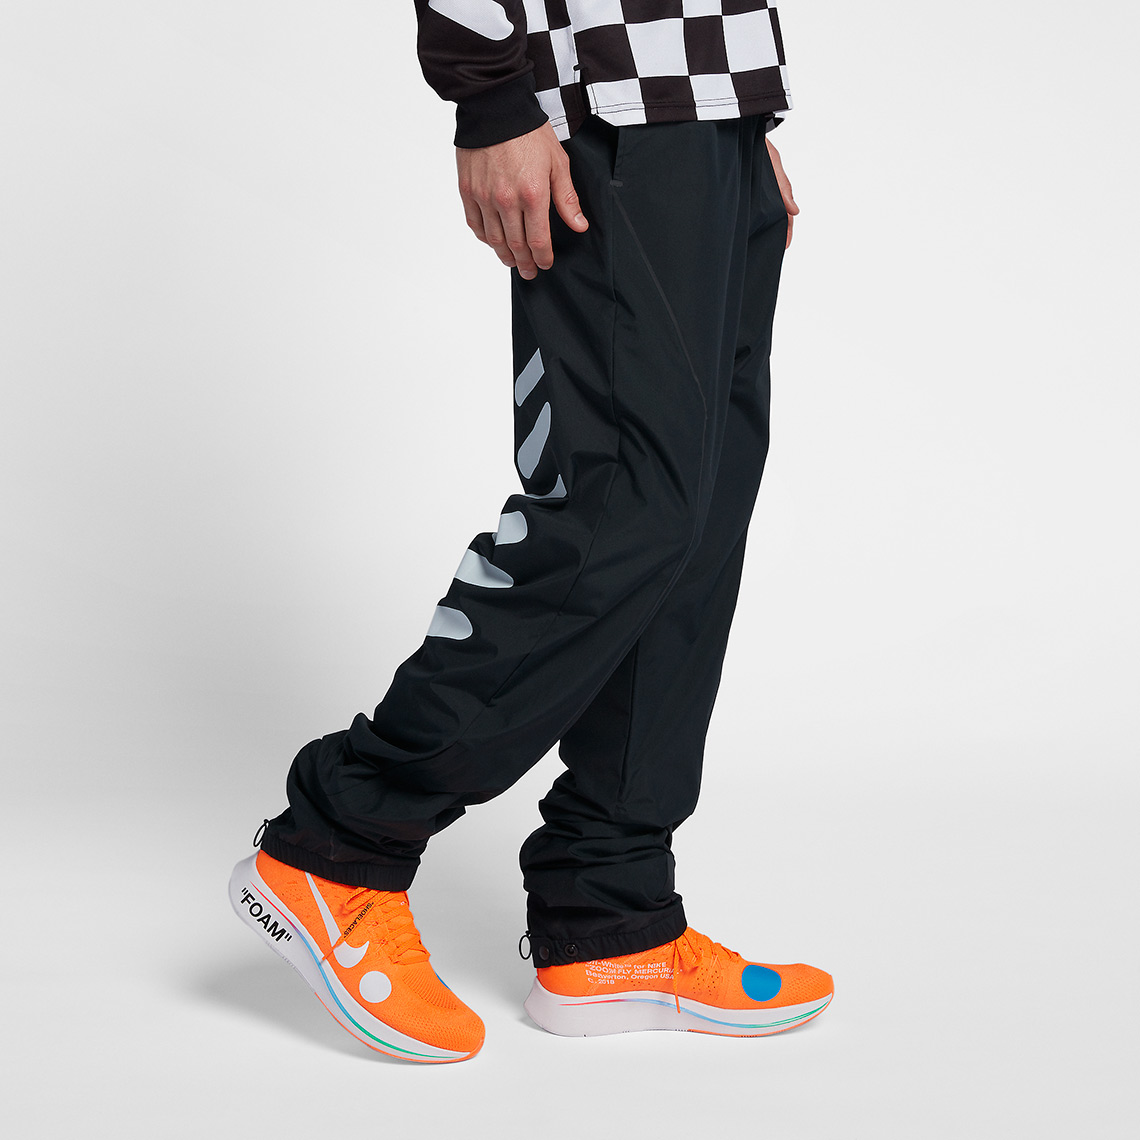 b6967f6b Nike x OFF WHITE Track Pants Release Date: June 14, 2018. COMING SOON TO  Nike $220. Color: Black